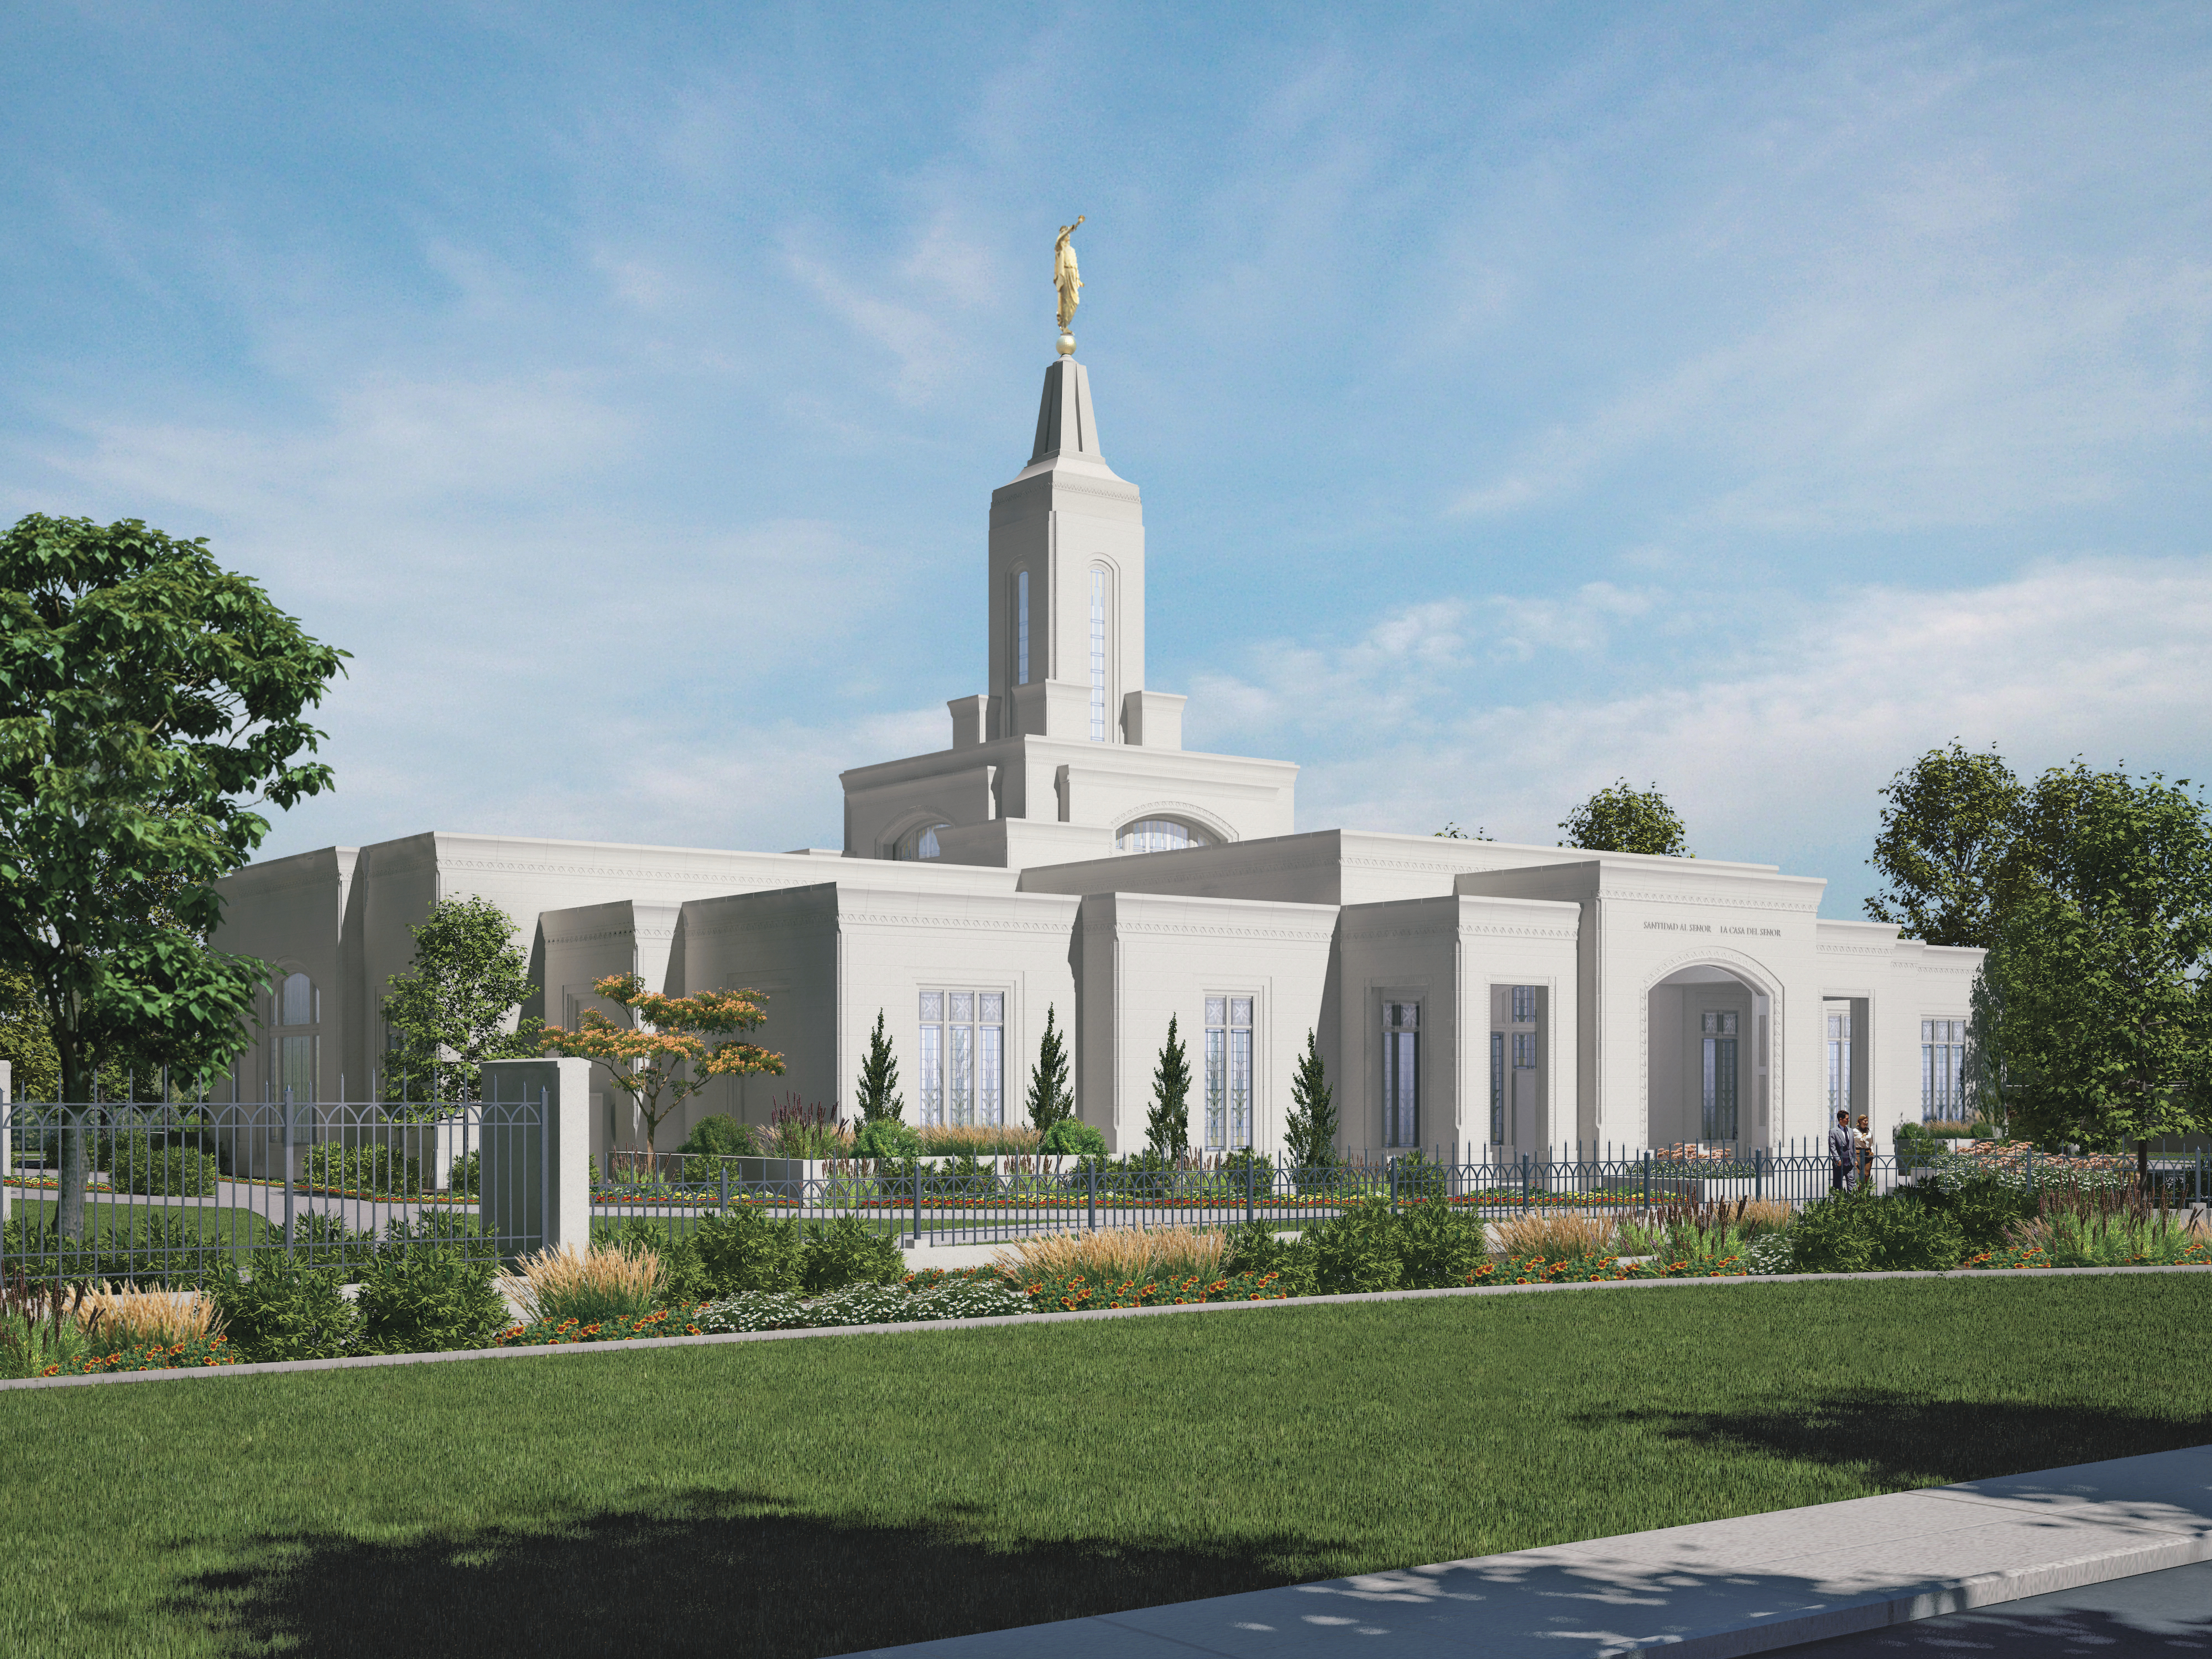 An artist's rendering of the Córdoba Argentina Temple.